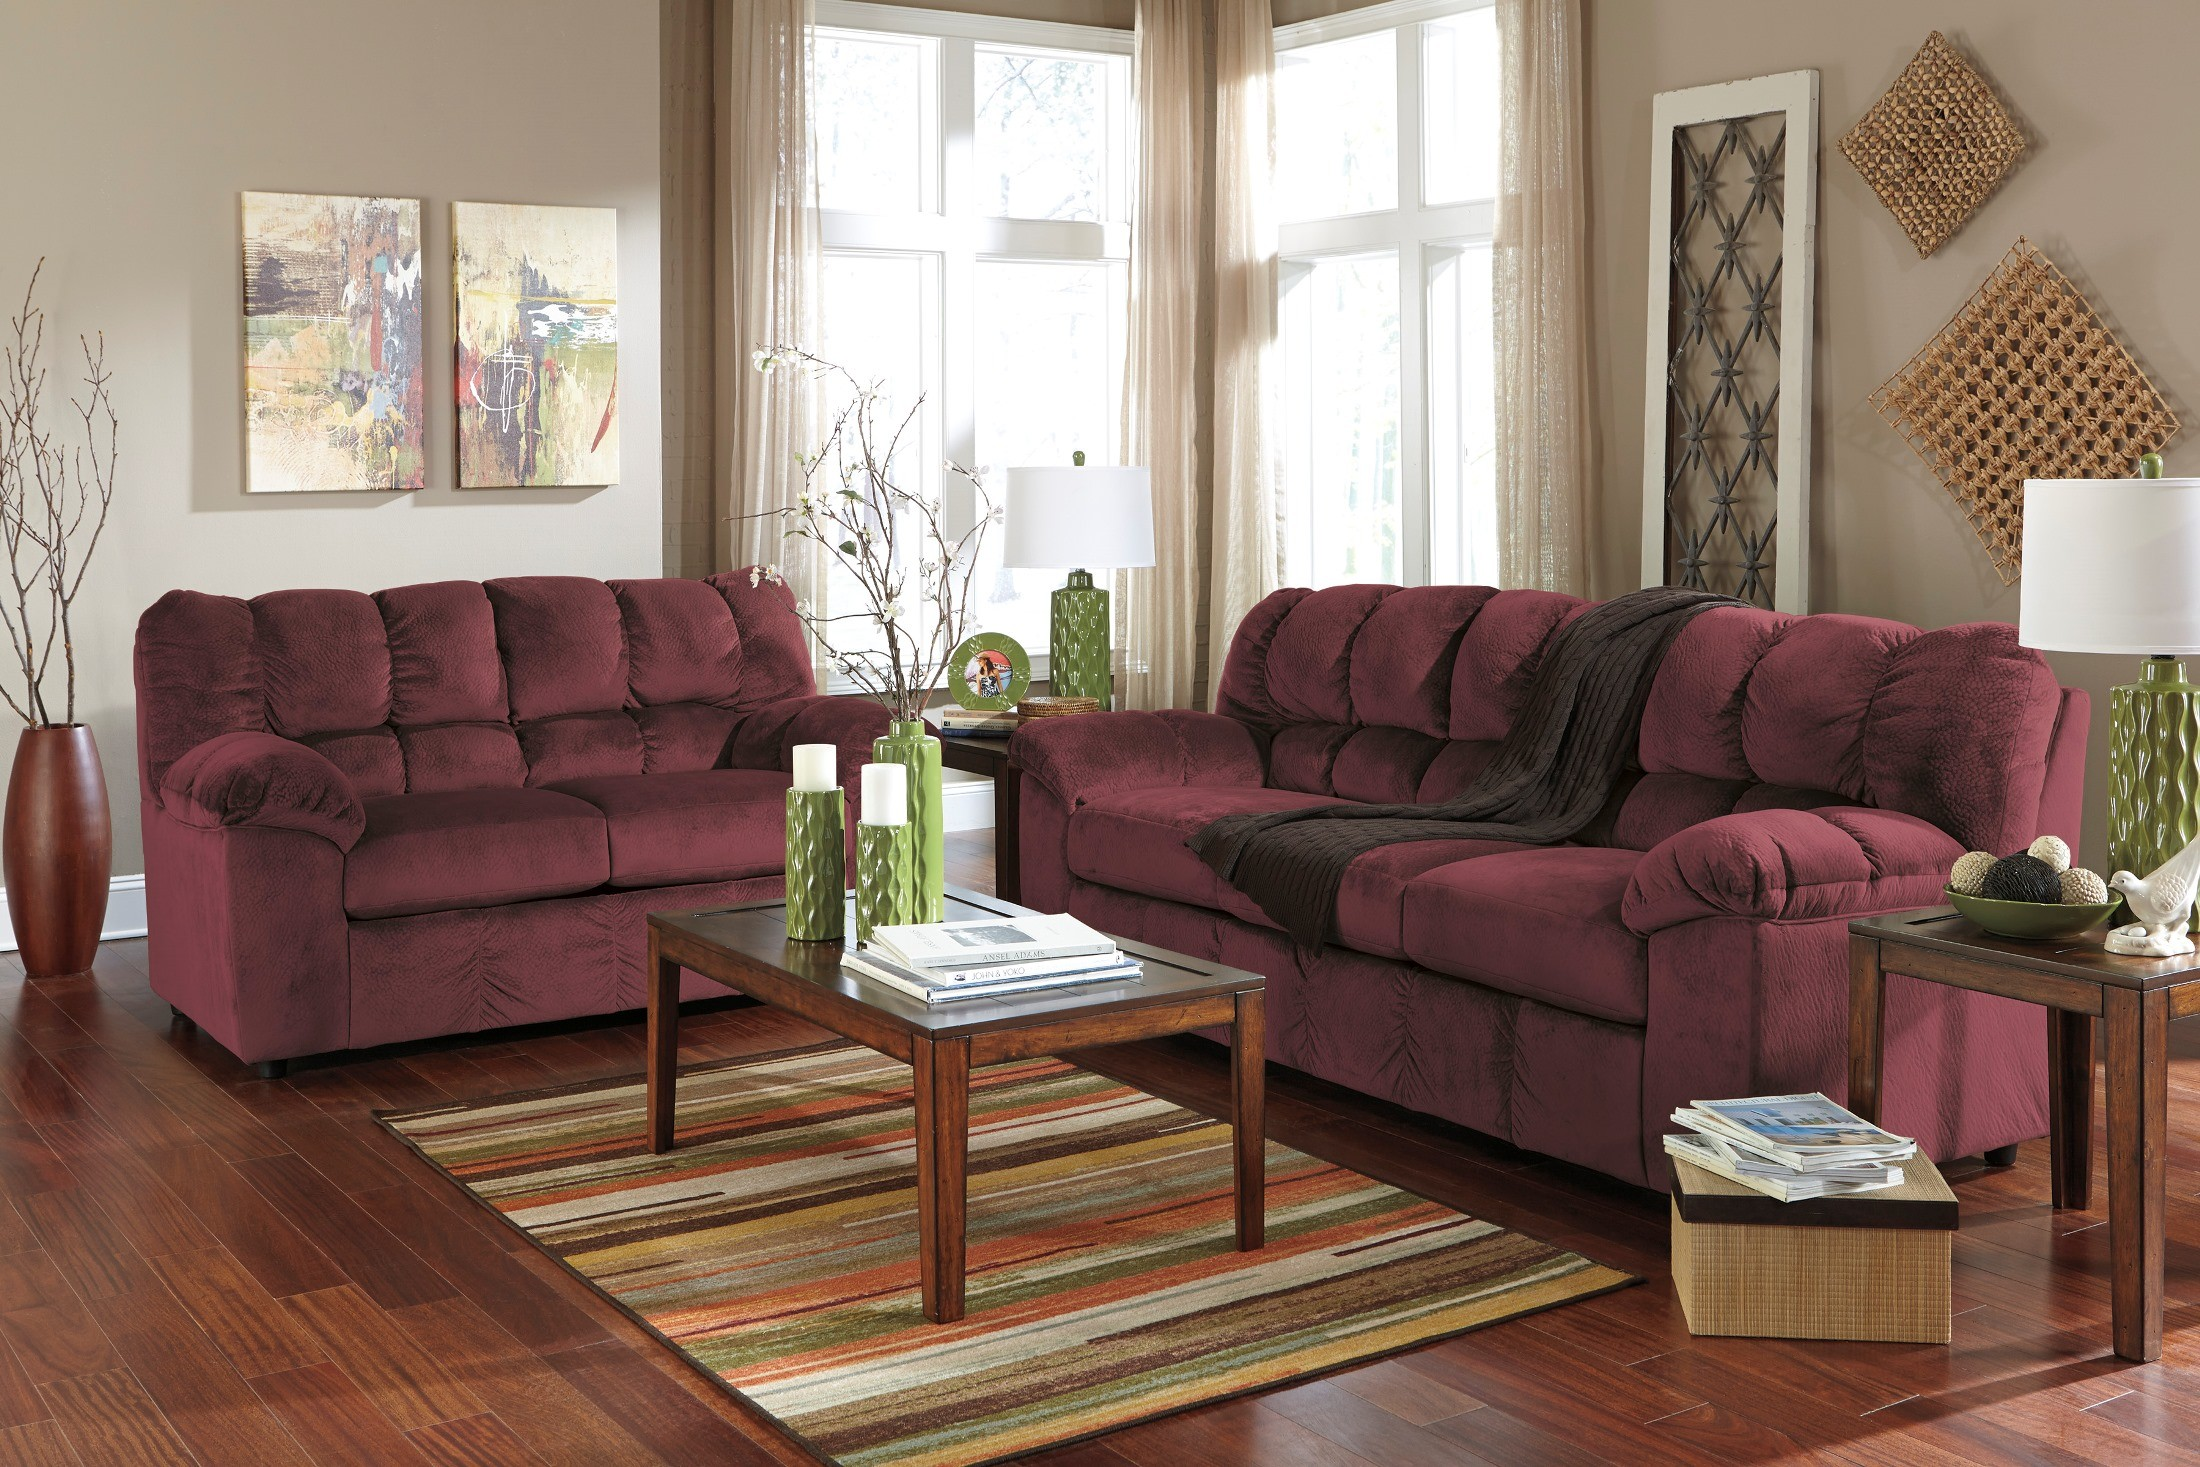 Julson Burgundy Living Room Set From Ashley (26602-38-35